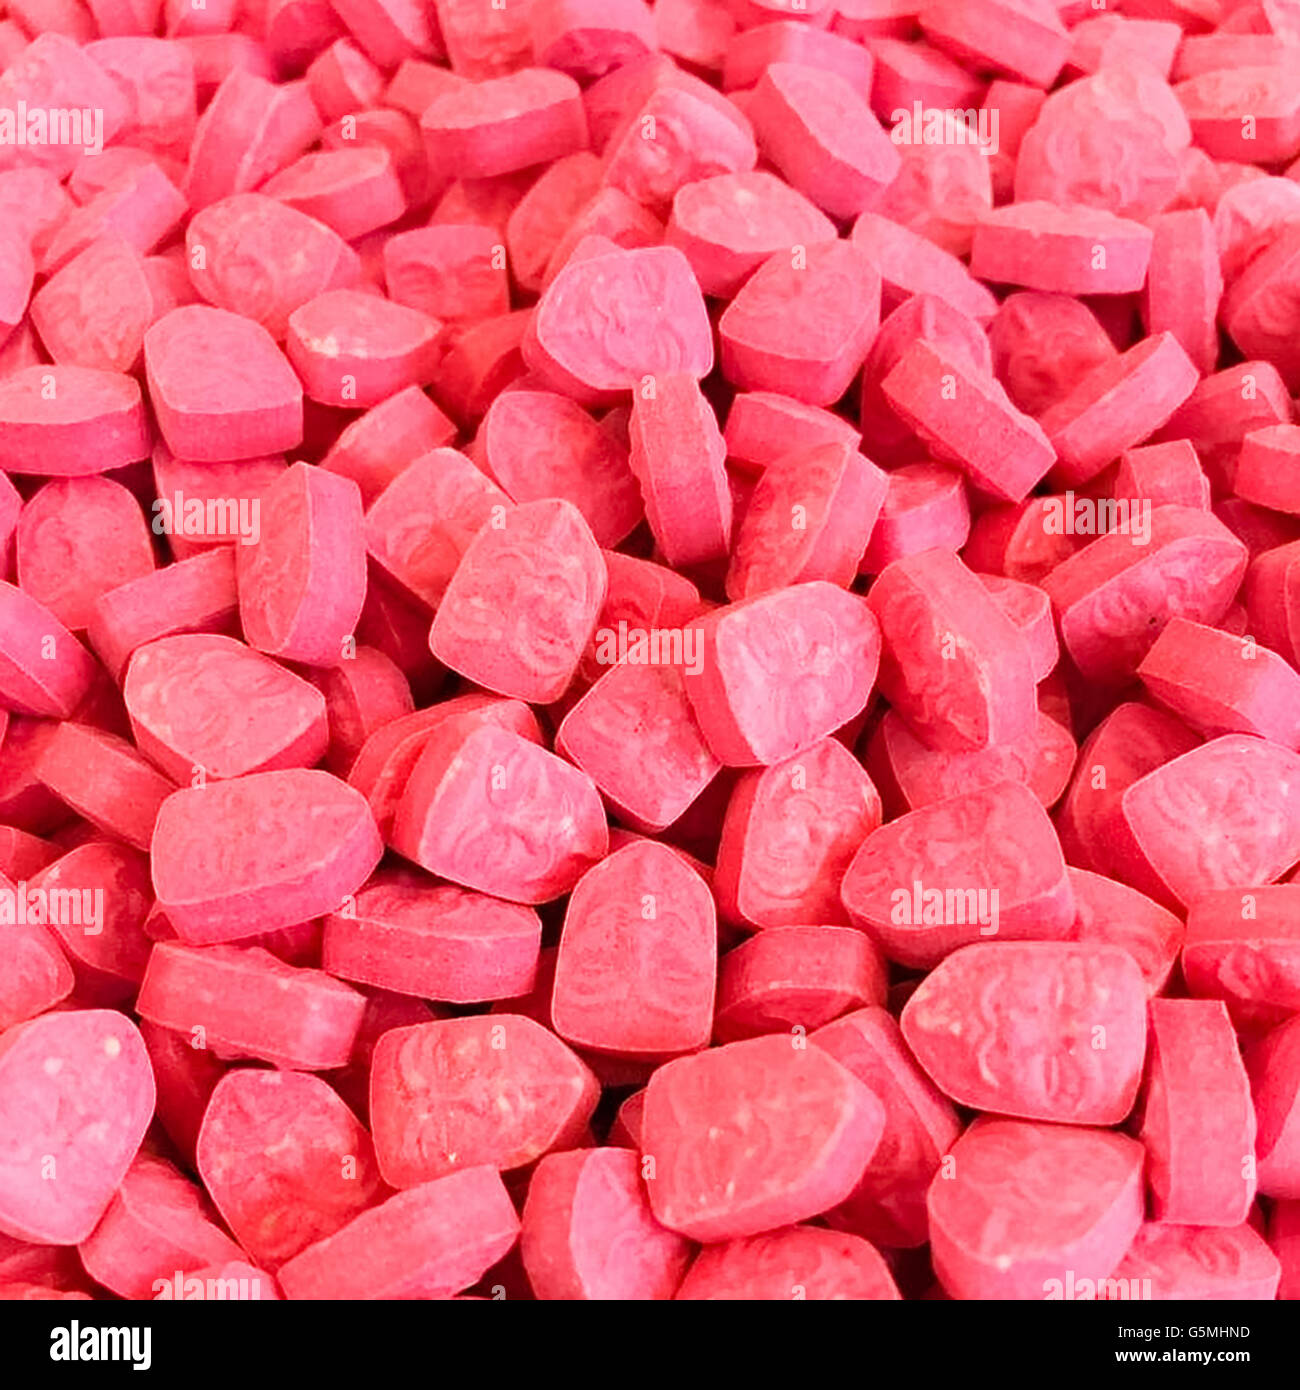 Ecstasy Tablets Stock Photos Ecstasy Tablets Stock Images Alamy